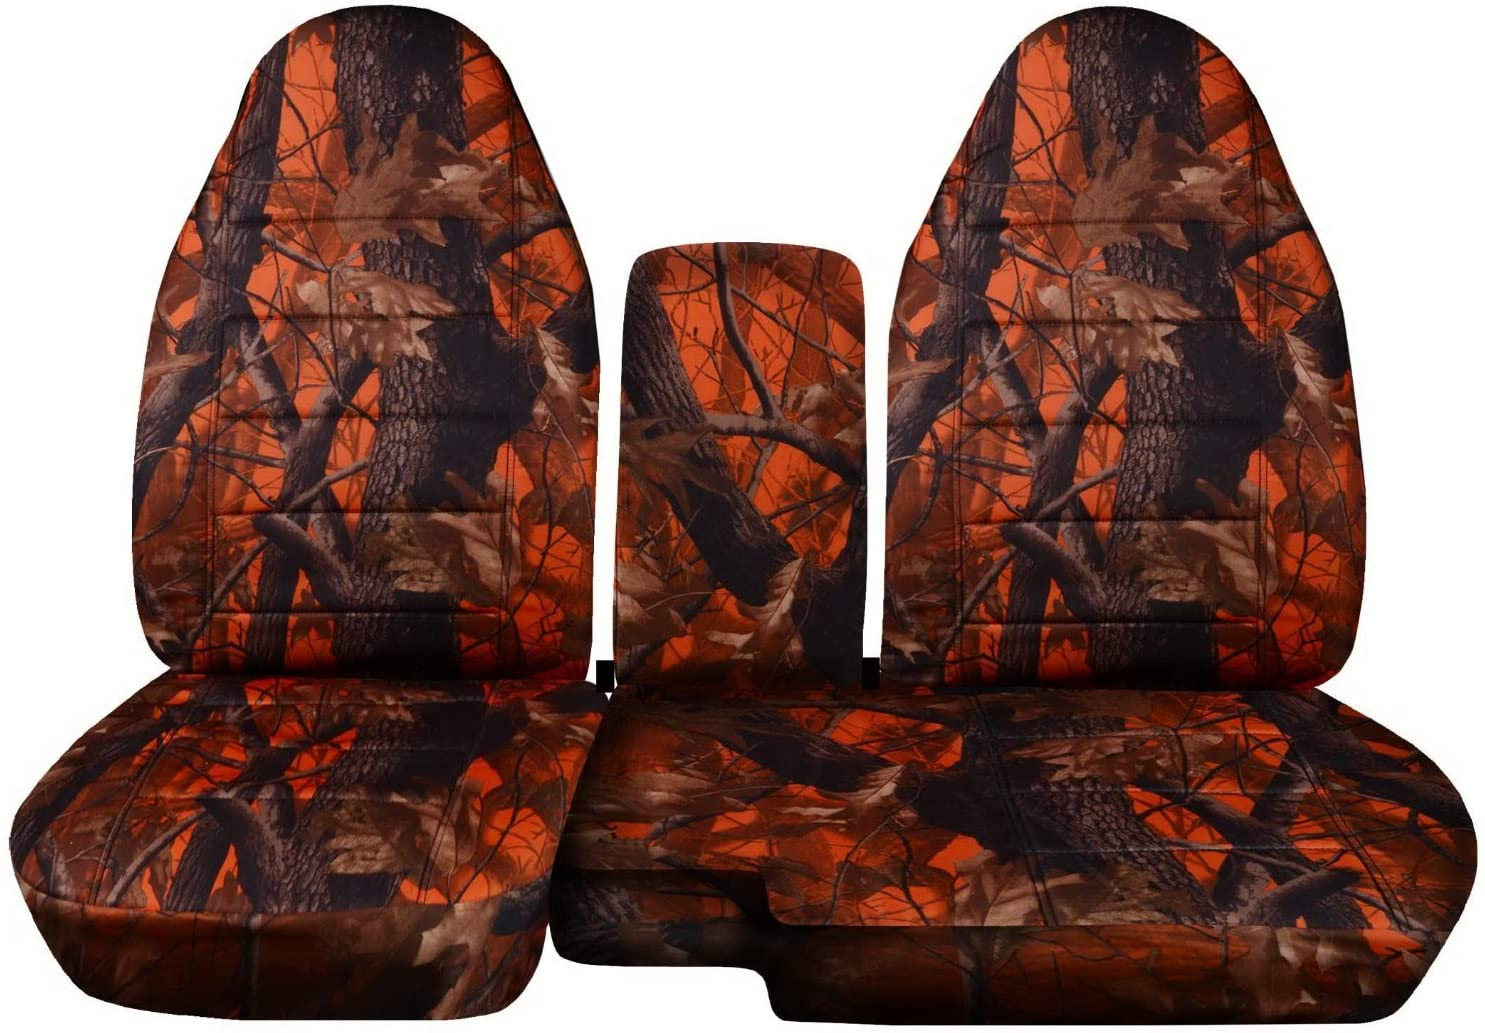 Totally Covers Compatible with 1998-2003 Ford Ranger/Mazda B-Series Camo Truck Seat Covers (60/40 Split Bench) w Center Console/Armrest Cover: Orange Tree Camouflage w/wo Cup Holders